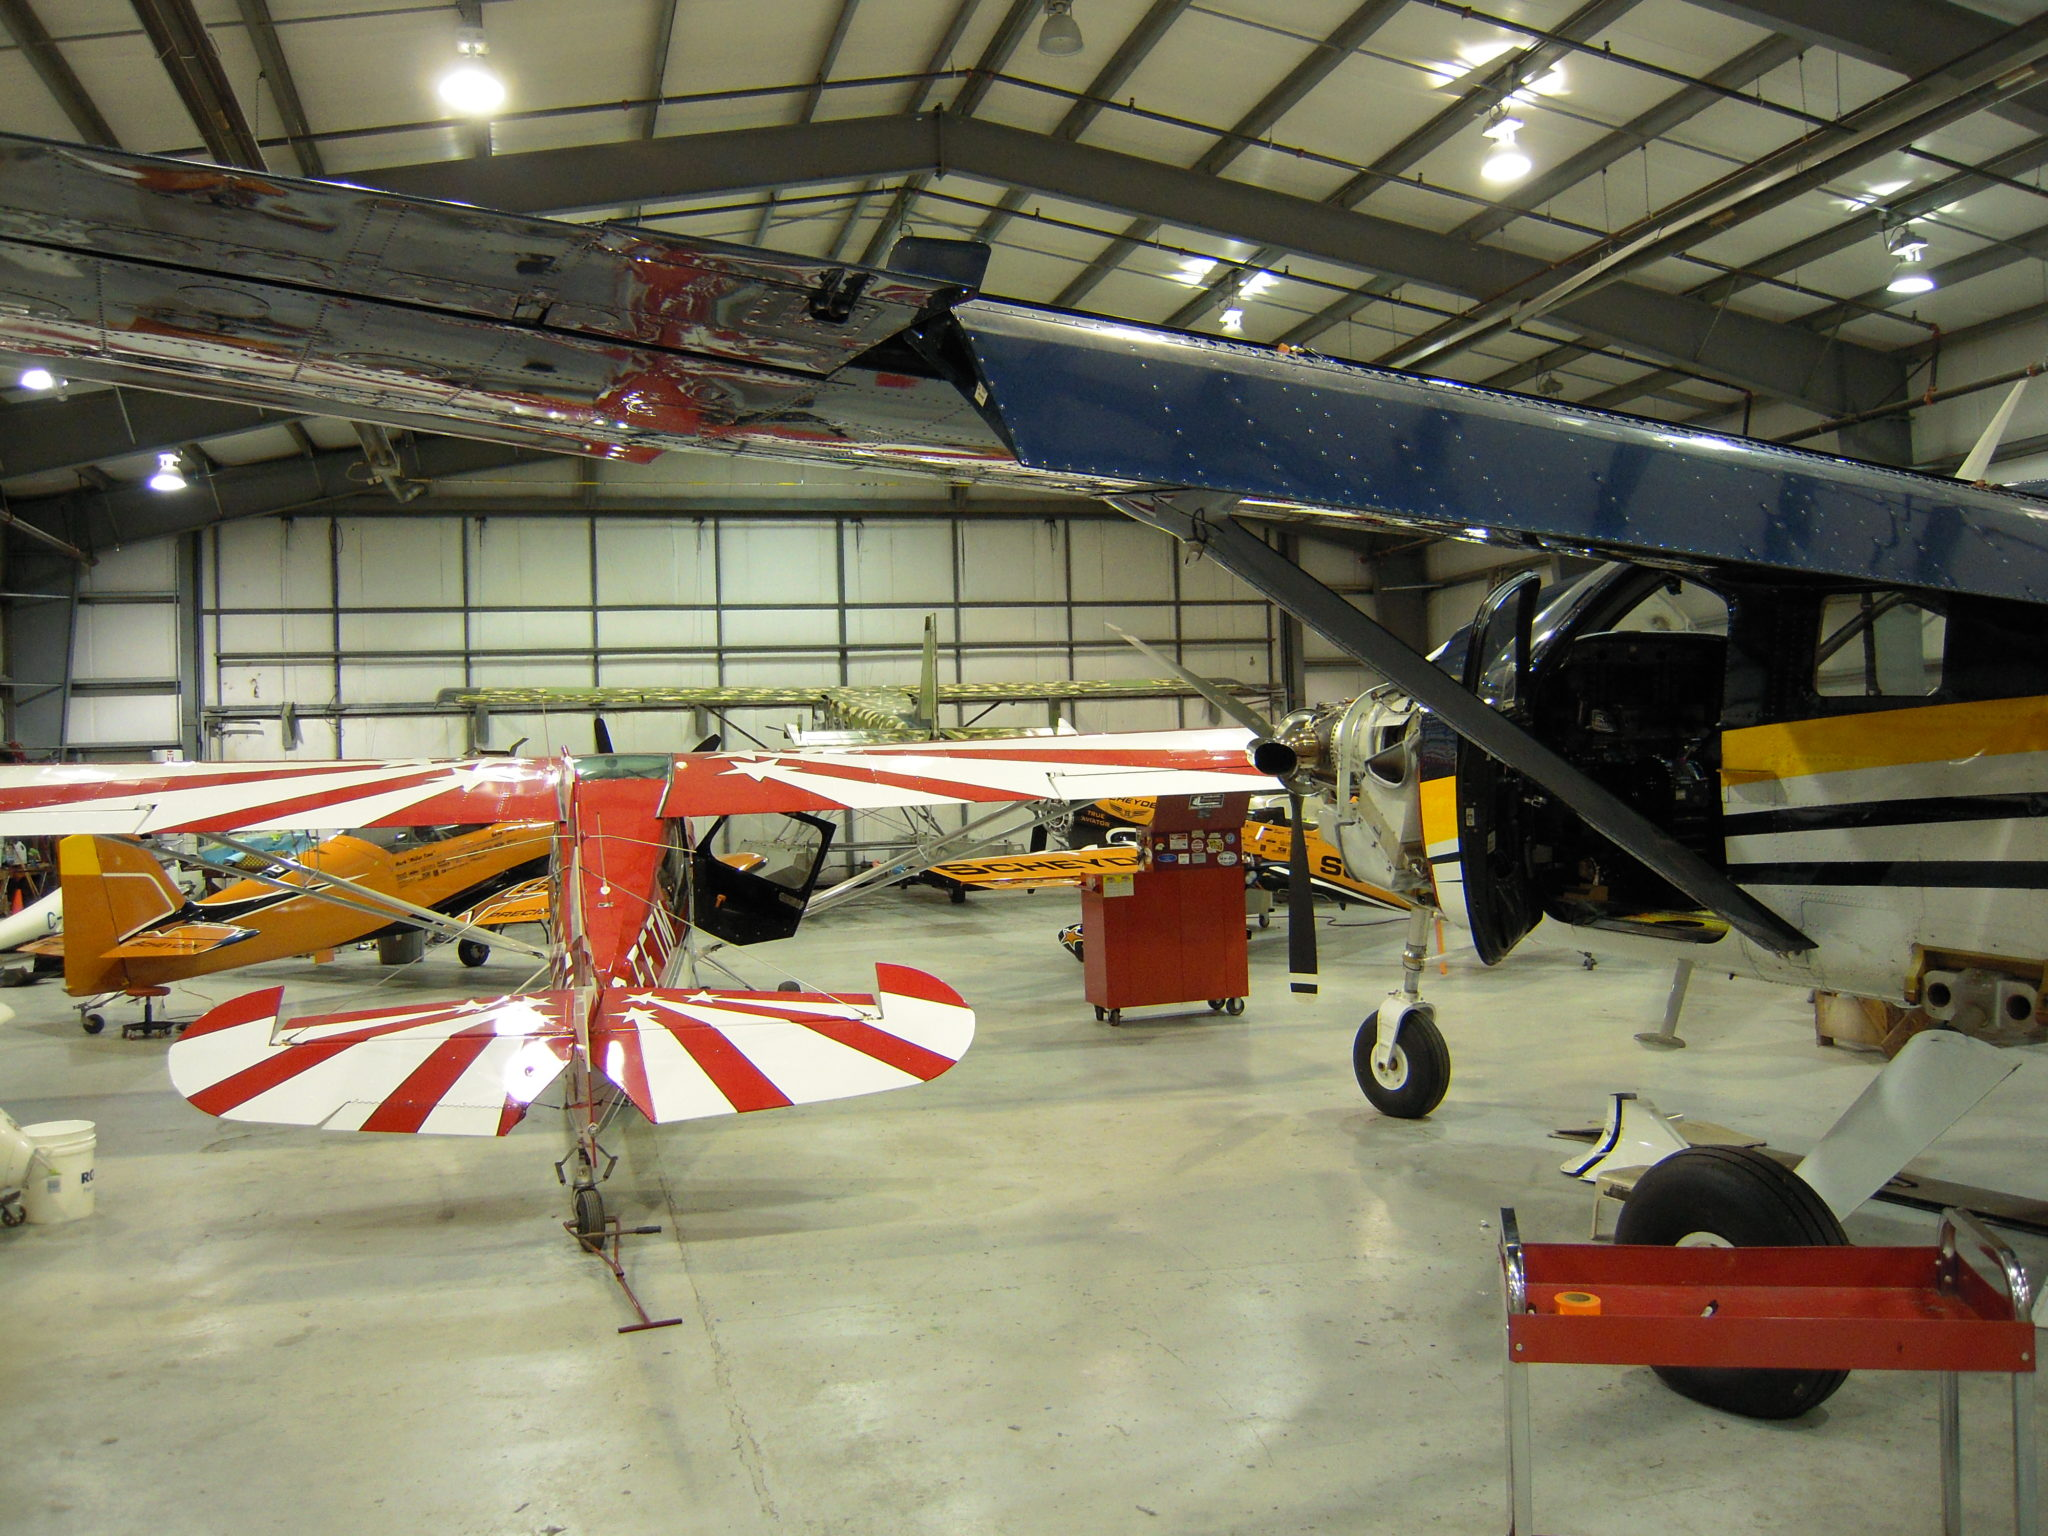 Aircraft Maintenance: Our attention to detail and varied services set us apart.